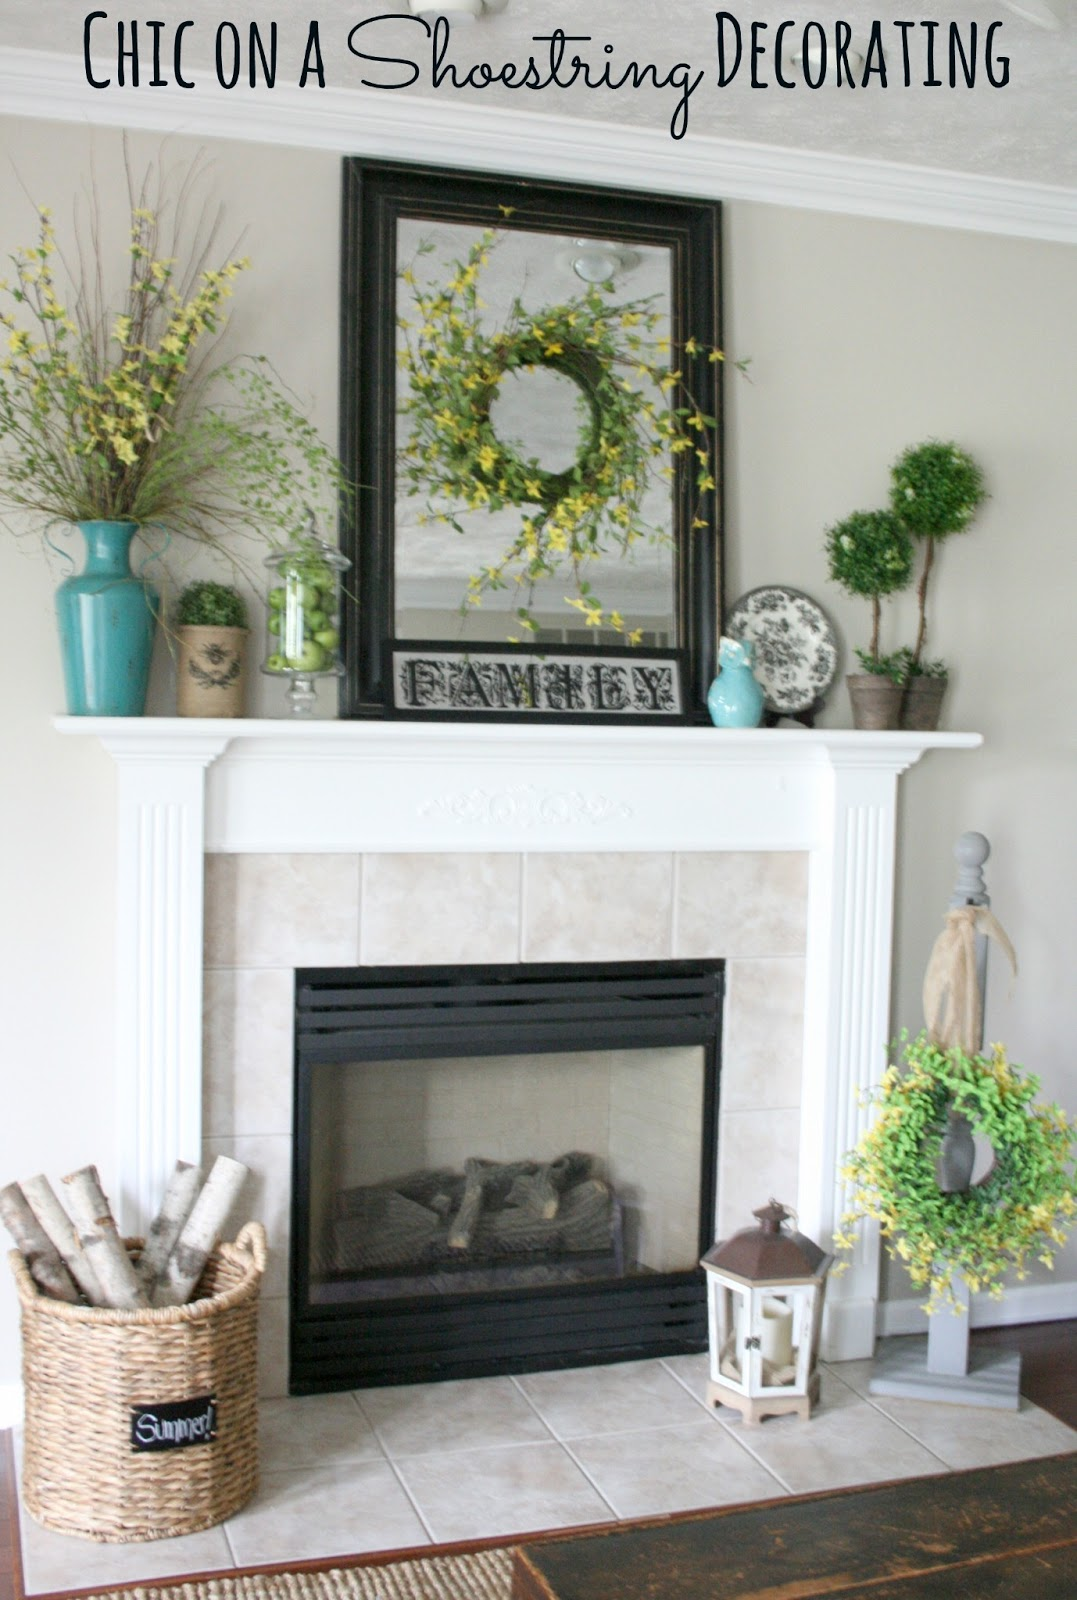 Decorating Ideas > Chic On A Shoestring Decorating Summer Mantel Featuring  ~ 141146_Fireplace Mantel Decorating Ideas For Summer